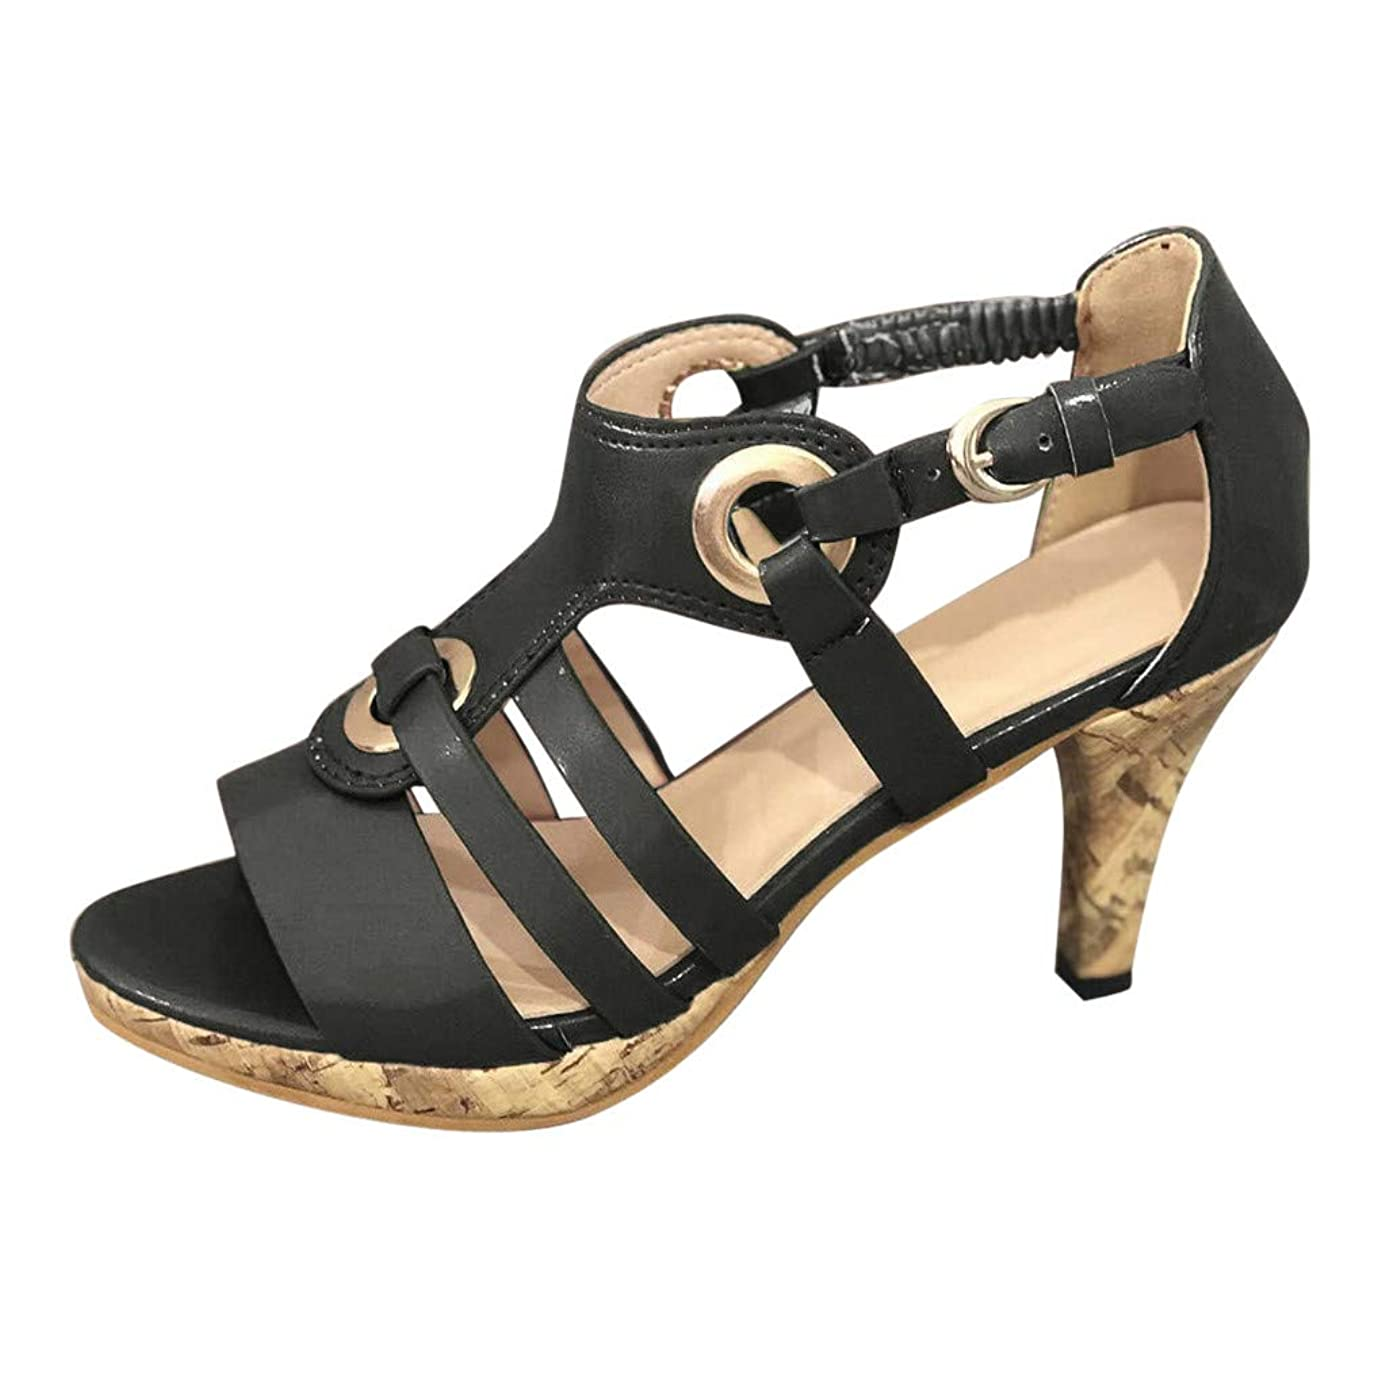 Shusuen Cutout Stacked Heel Sandal Fashion Stilettos Open Toe Pump Heel Sandals